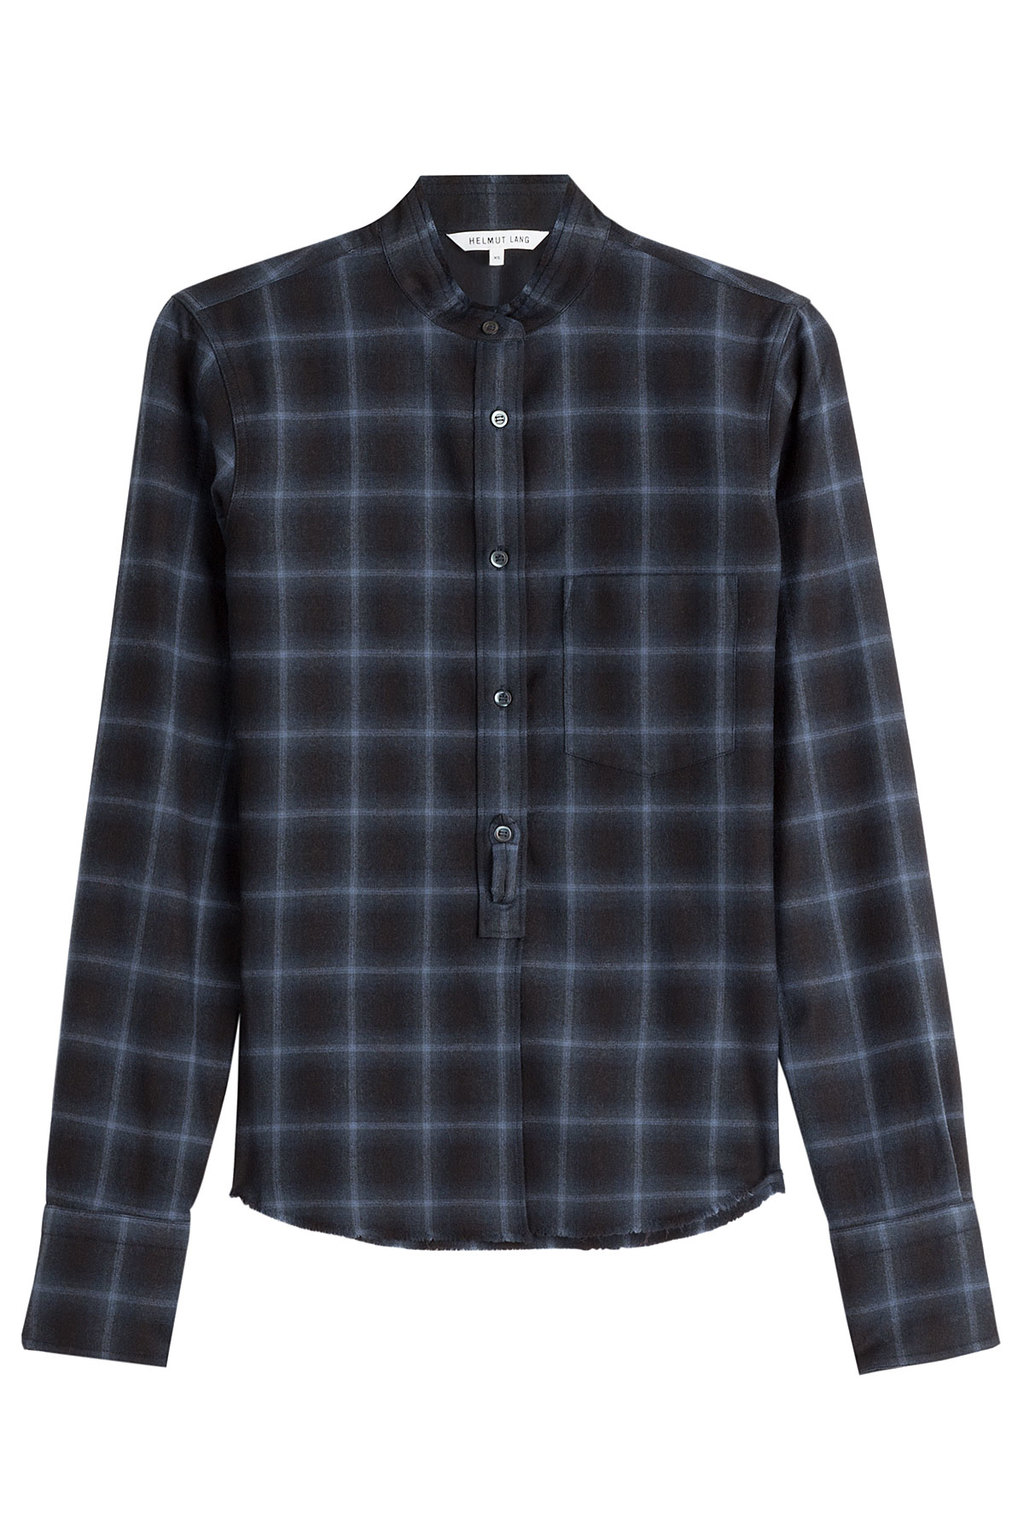 Wool Cashmere Shrunken Plaid Shirt - neckline: shirt collar/peter pan/zip with opening; pattern: checked/gingham; style: shirt; secondary colour: pale blue; predominant colour: navy; occasions: casual; length: standard; fit: body skimming; fibres: cashmere - 100%; sleeve length: long sleeve; sleeve style: standard; pattern type: fabric; texture group: other - light to midweight; multicoloured: multicoloured; season: a/w 2016; wardrobe: highlight